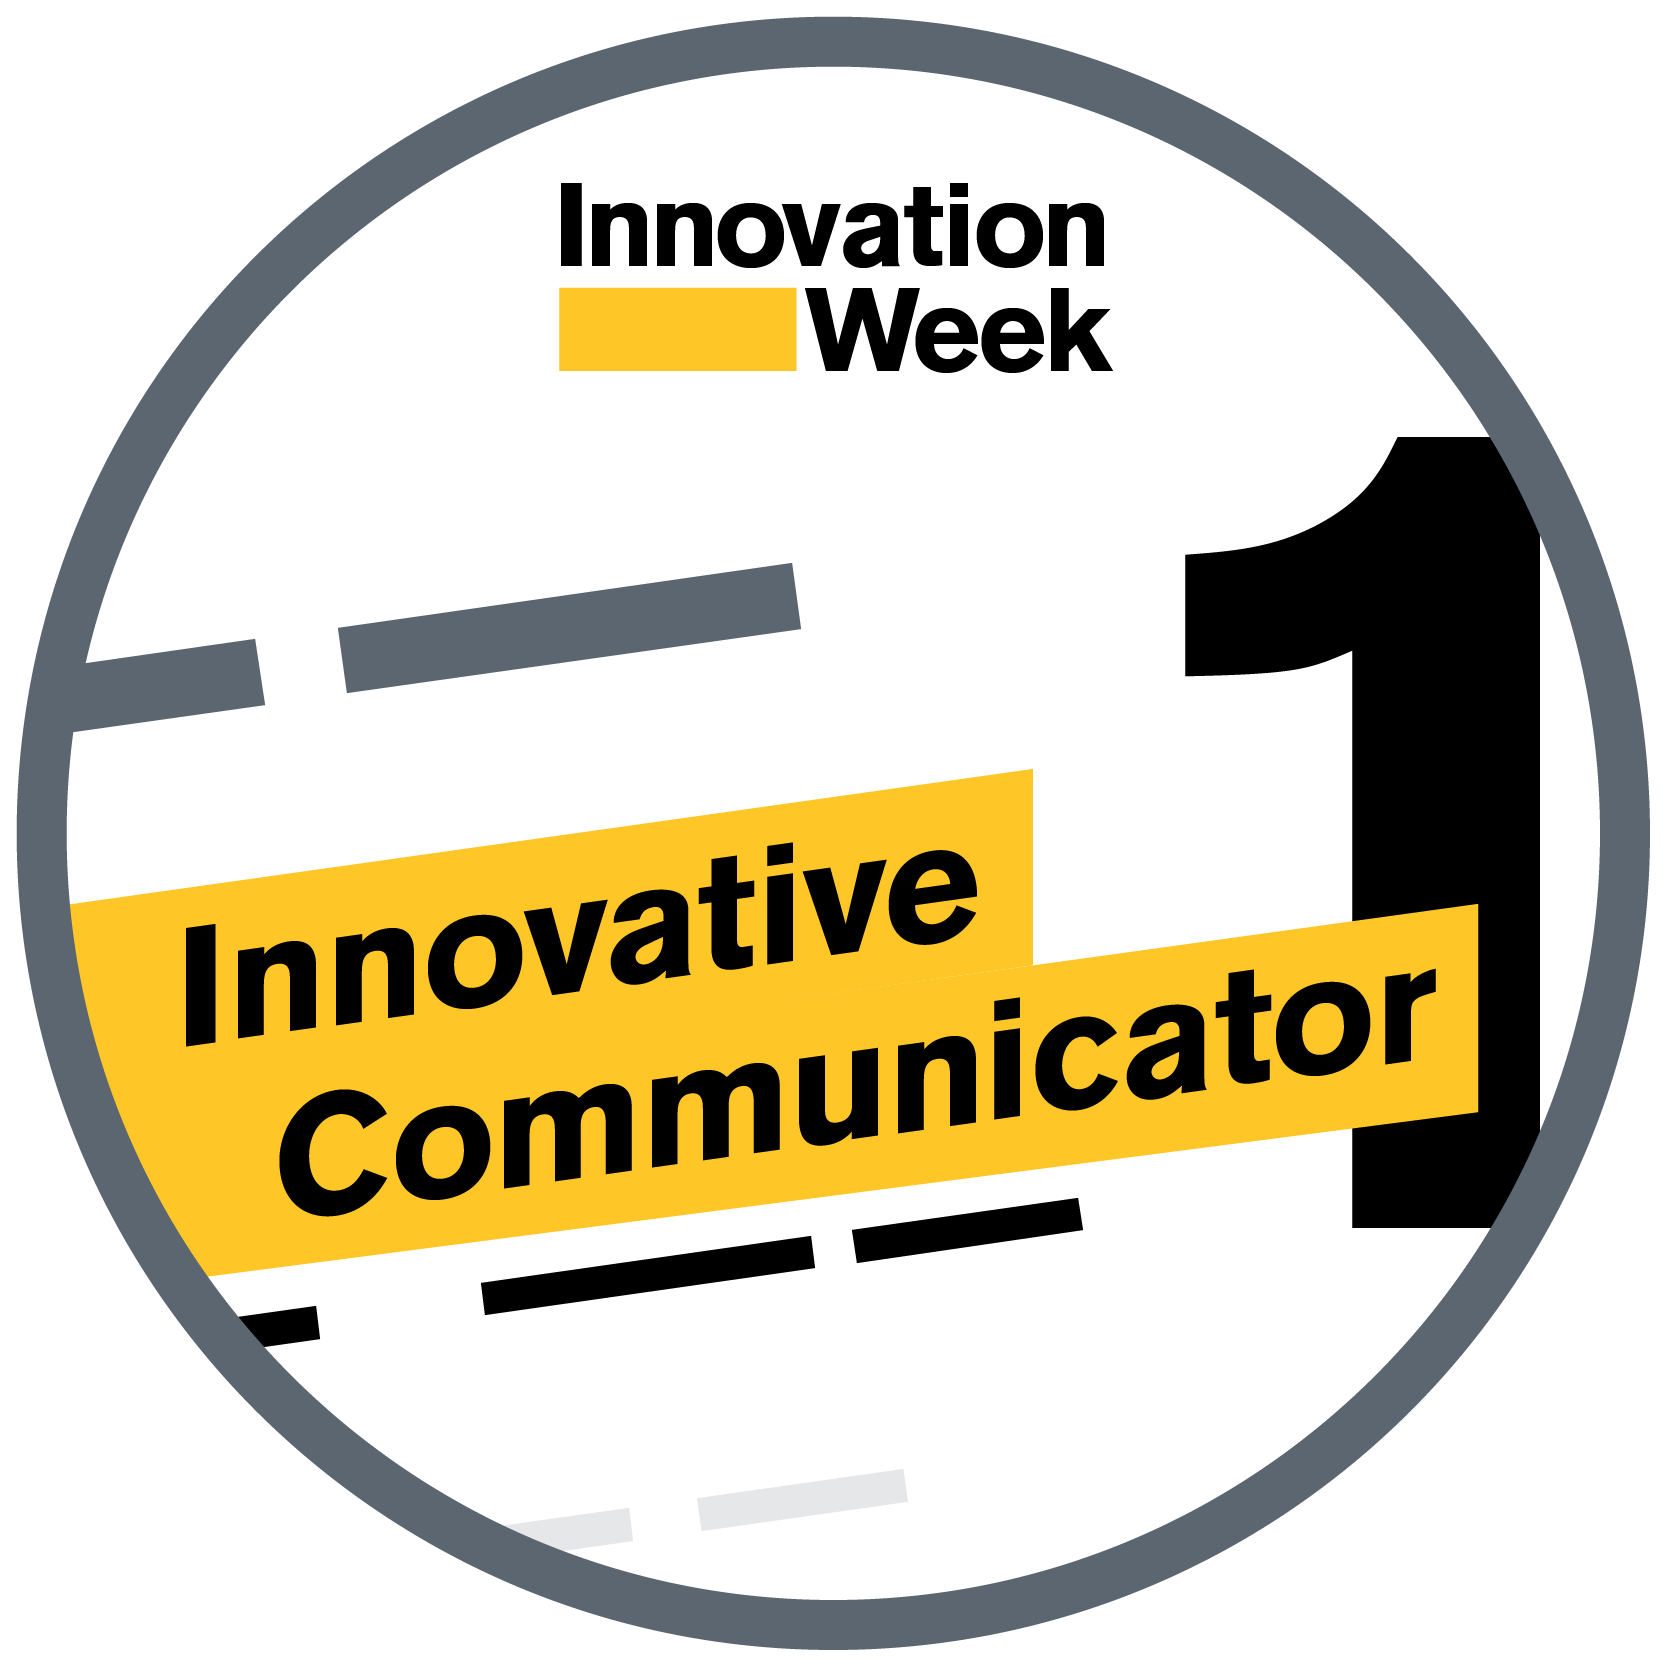 innovative communicator